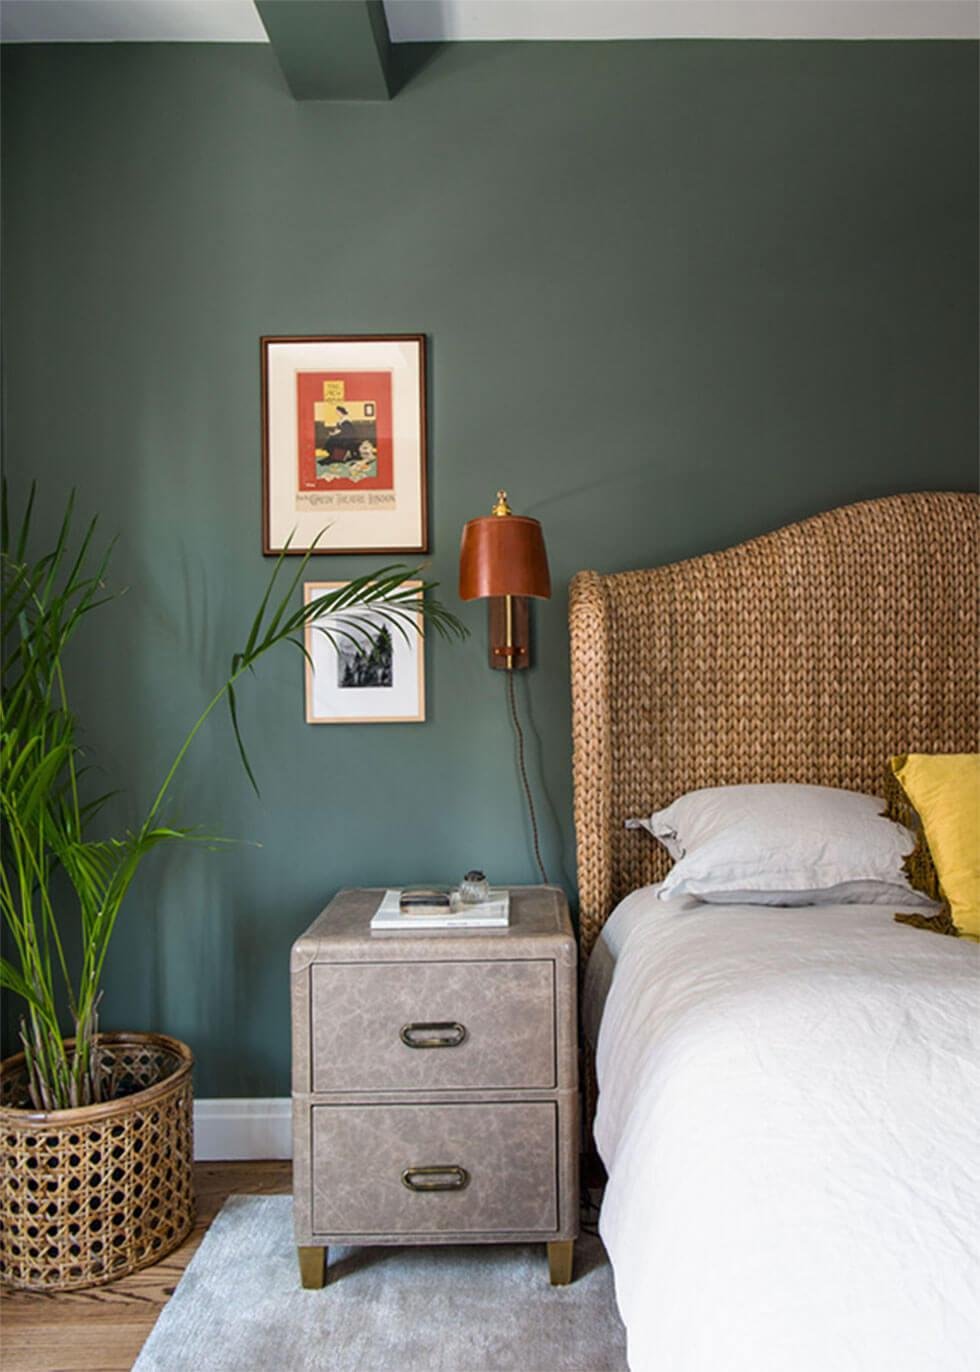 A bedroom wall painted in green, with natural materials around the room.